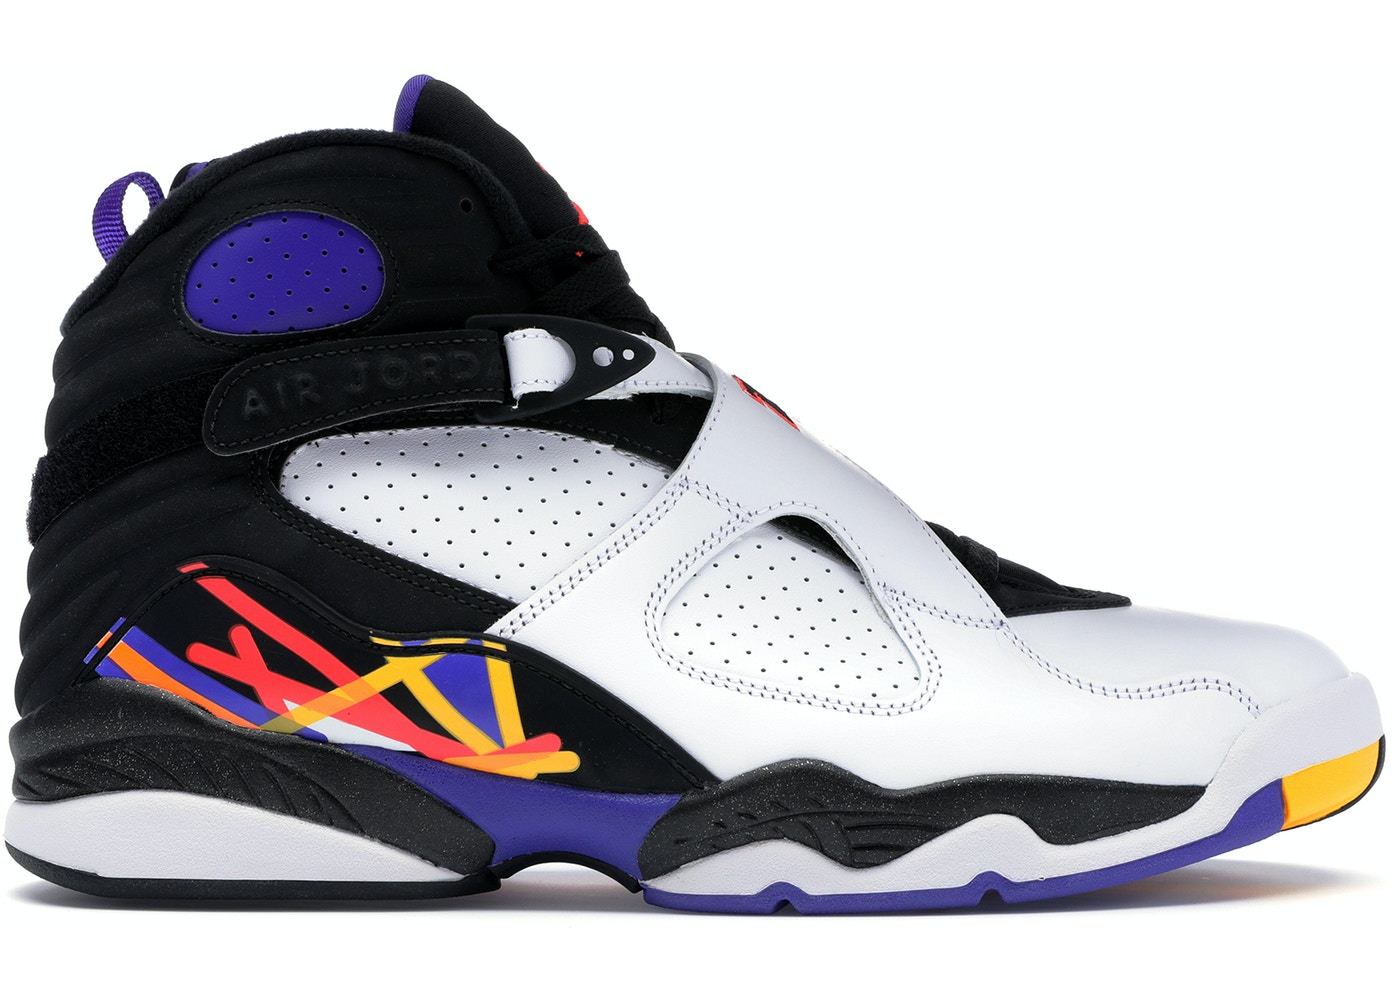 2dba970ef34640 Buy Air Jordan 8 Shoes   Deadstock Sneakers